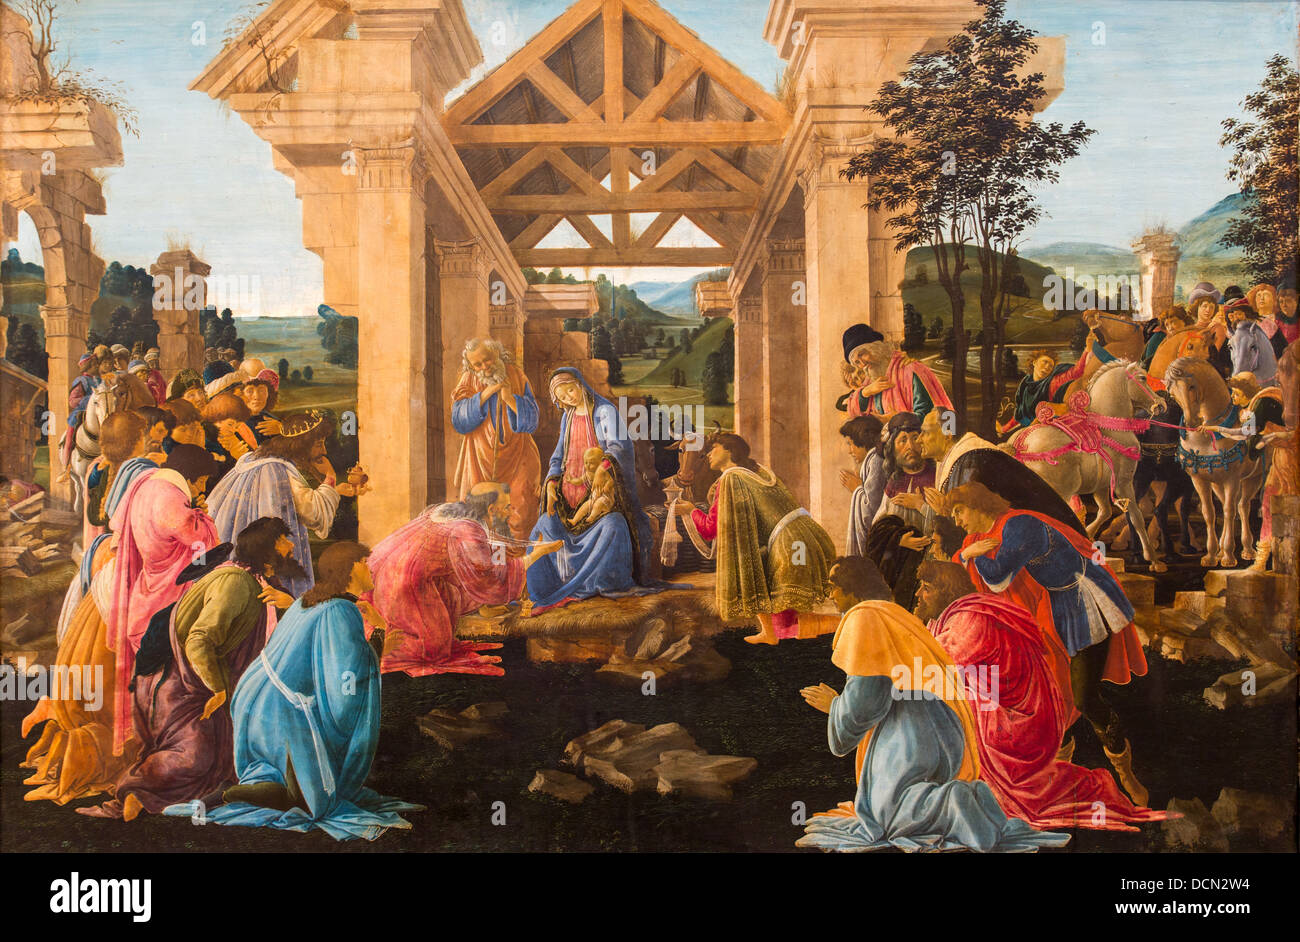 15th century  -  The Adoration of the Magi, 1478 - Sandro Botticelli Philippe Sauvan-Magnet / Active Museum - Stock Image